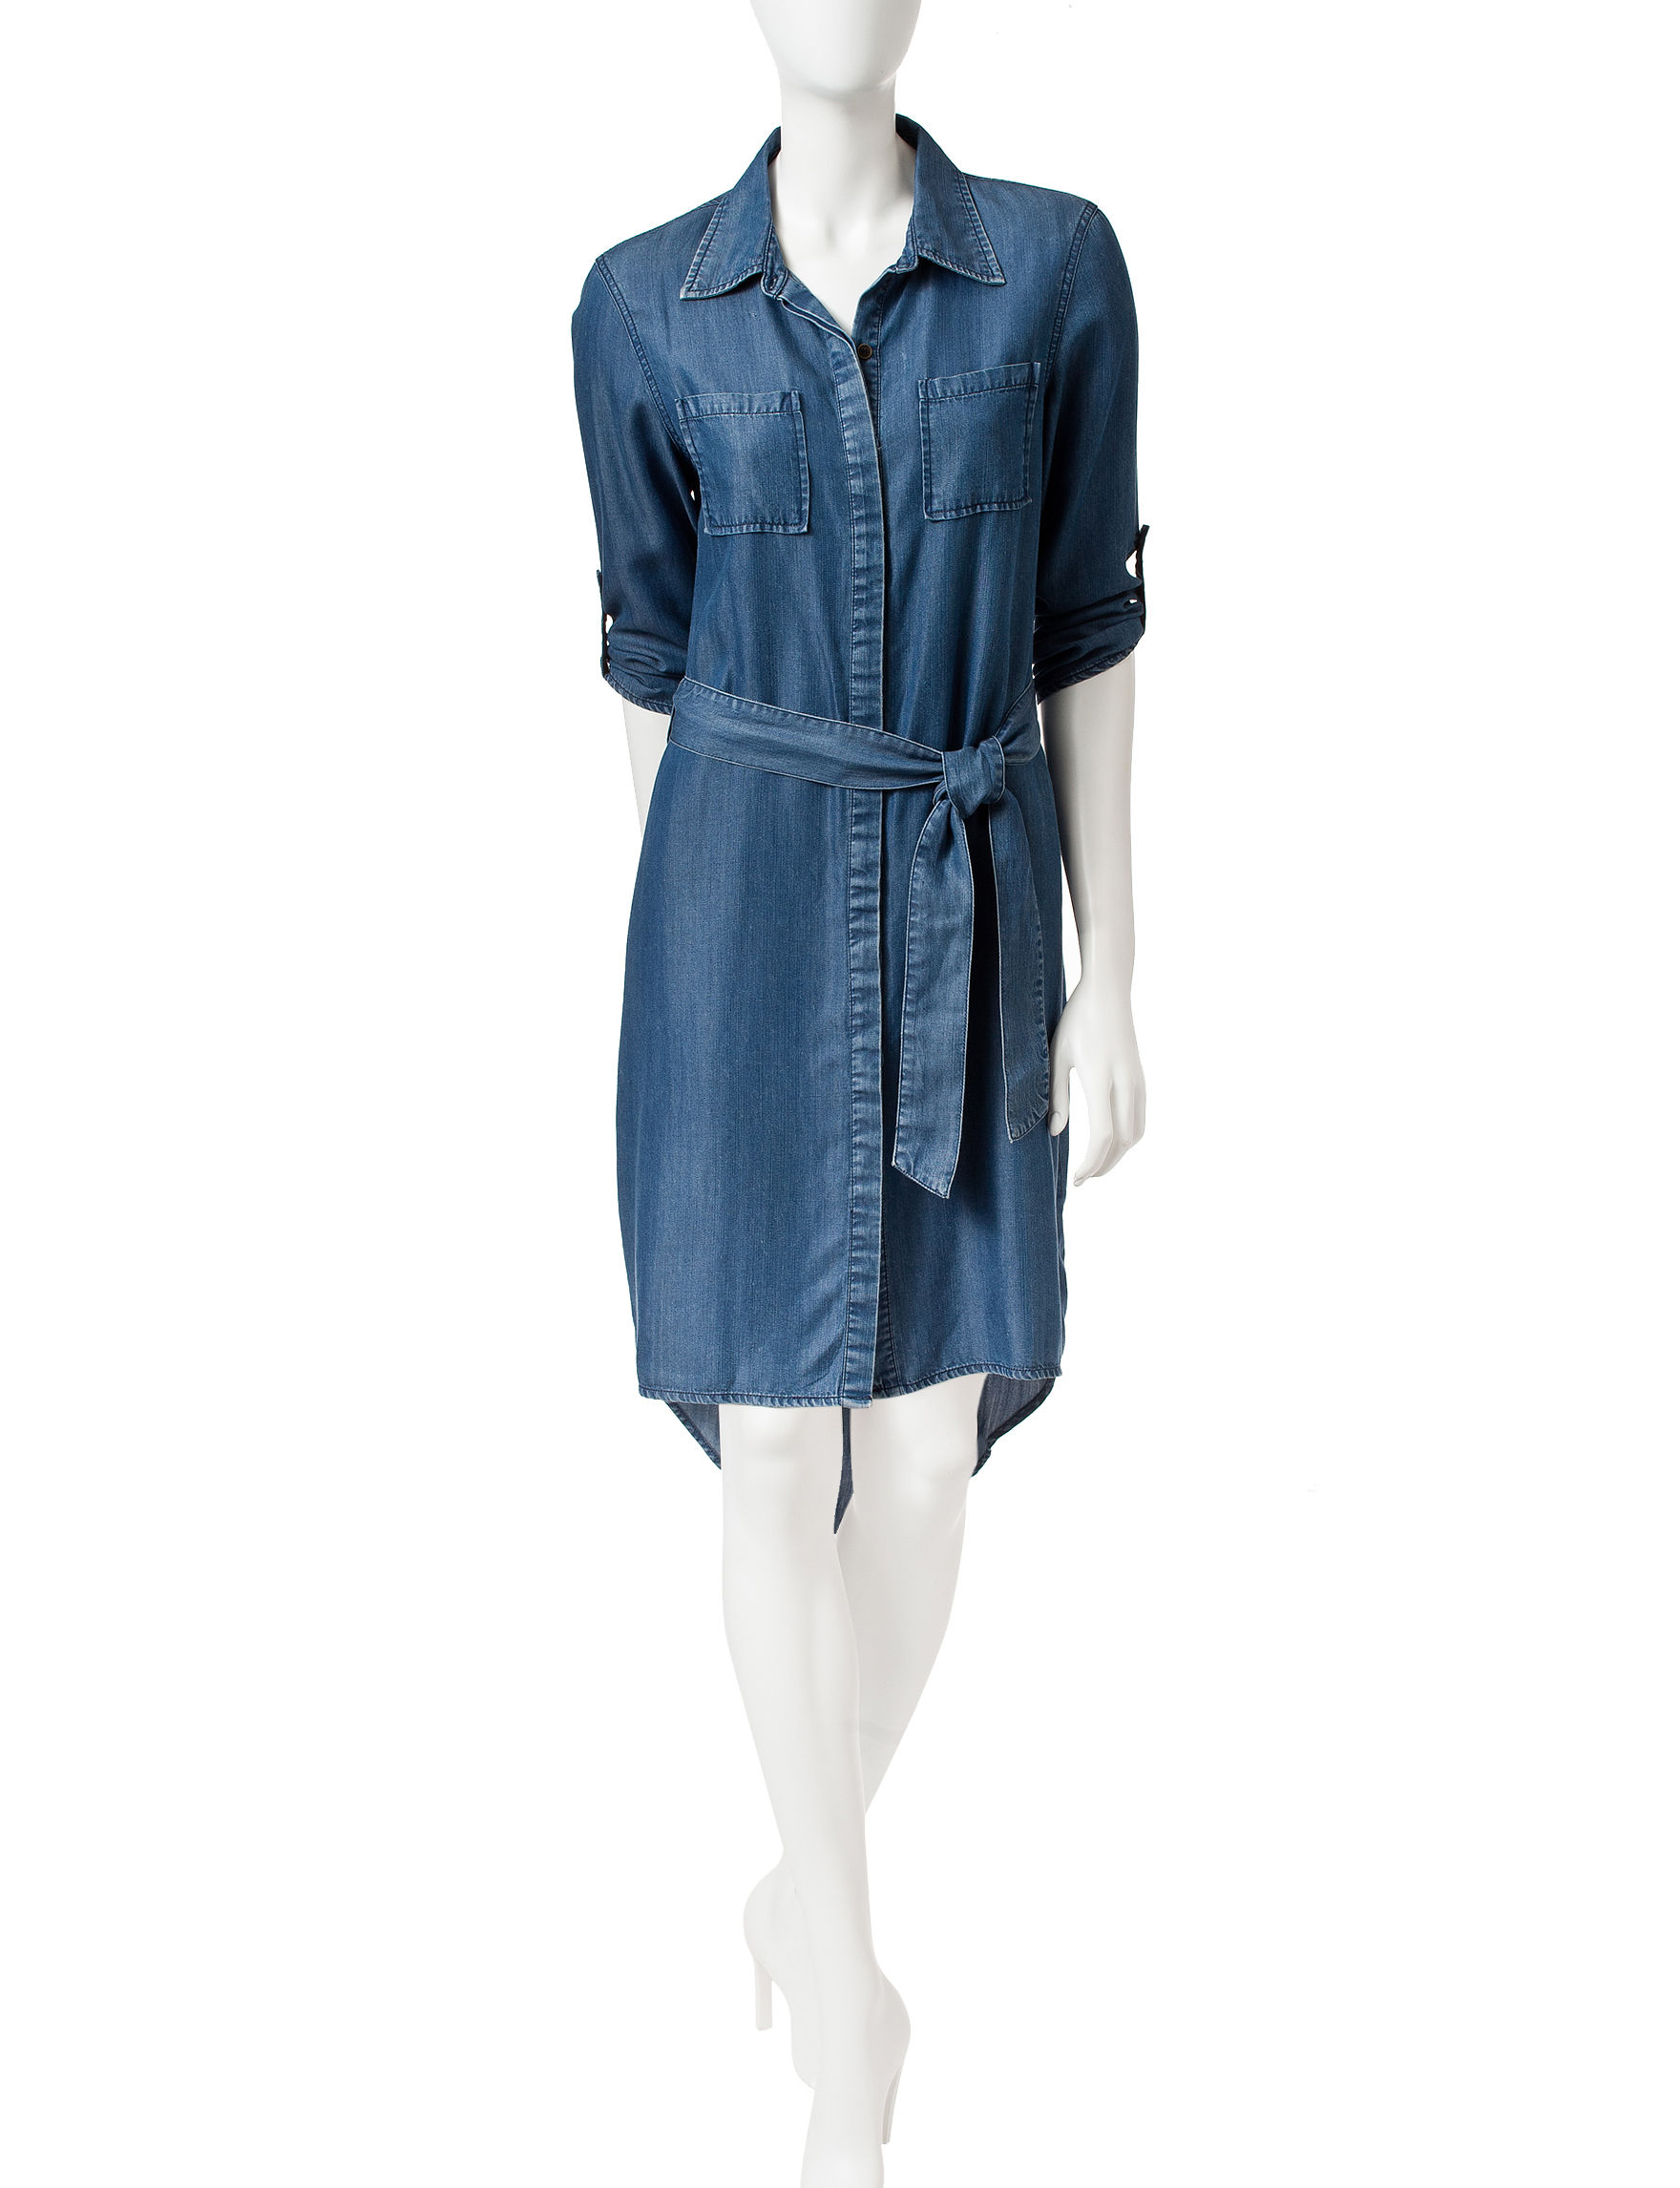 Signature Studio Chambray Everyday & Casual Shirt Dresses